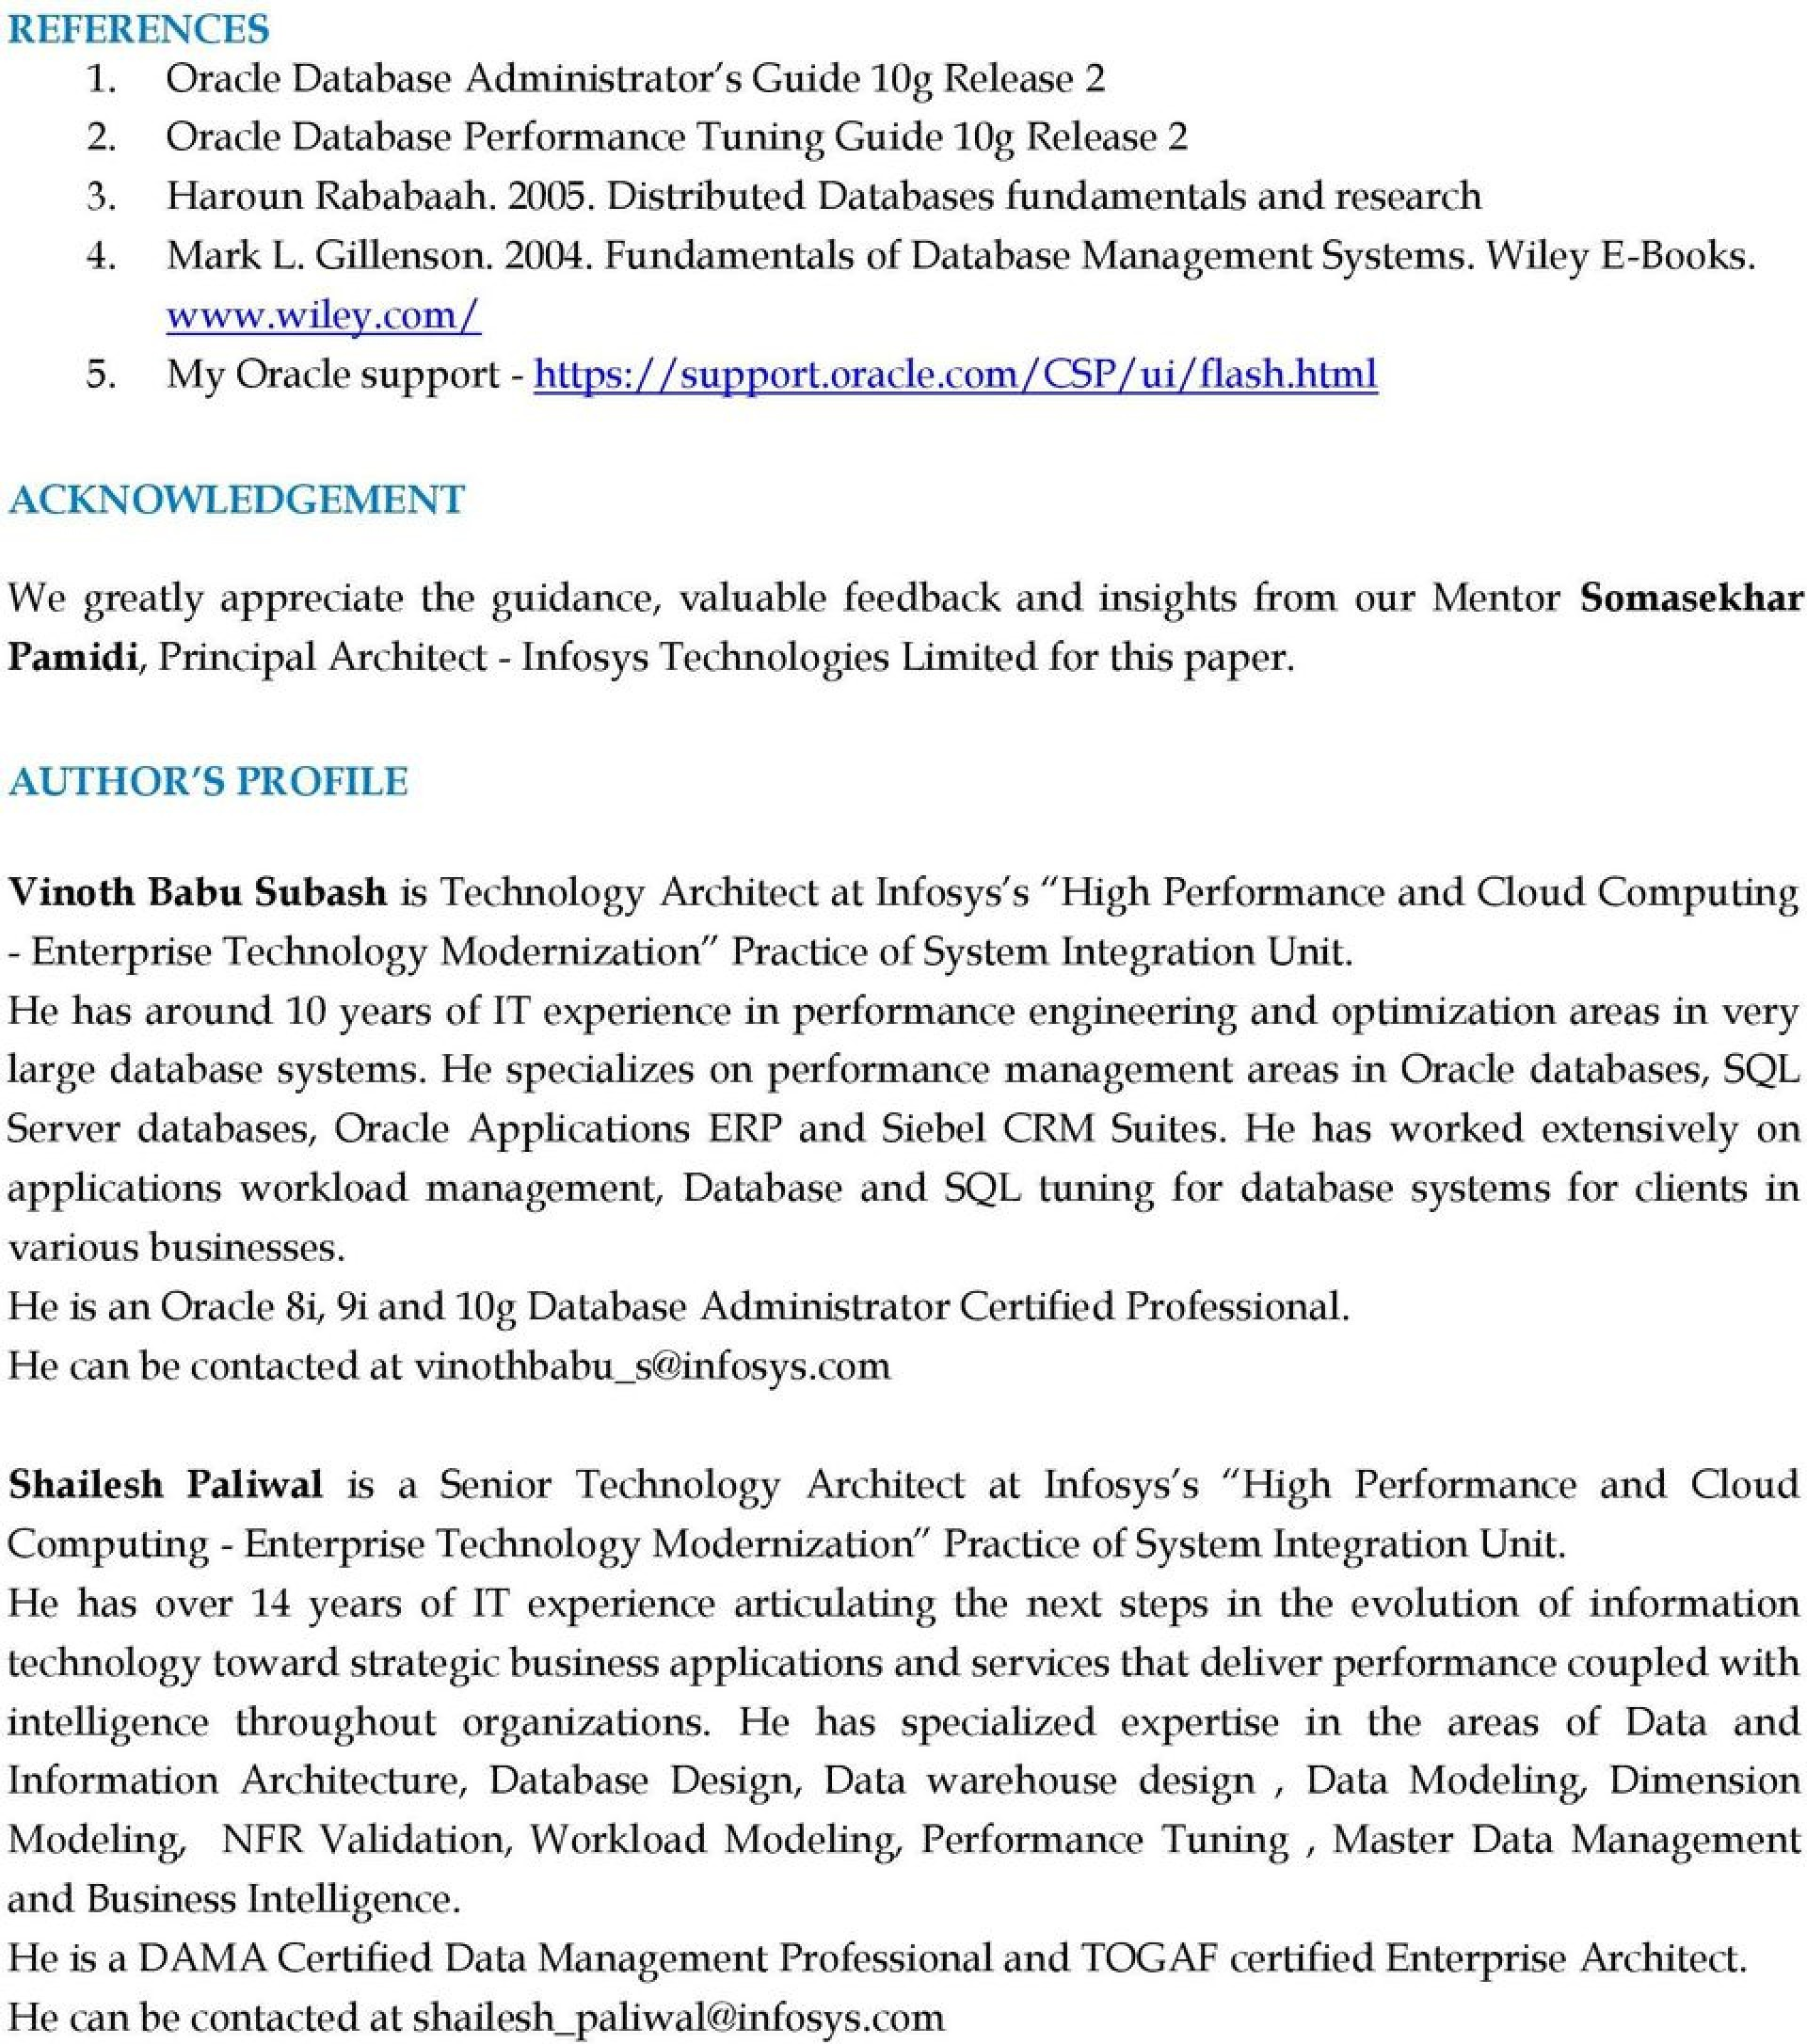 019 Research Paper Database Page 14 Sensational Ieee Papers On Management System Pdf 1920